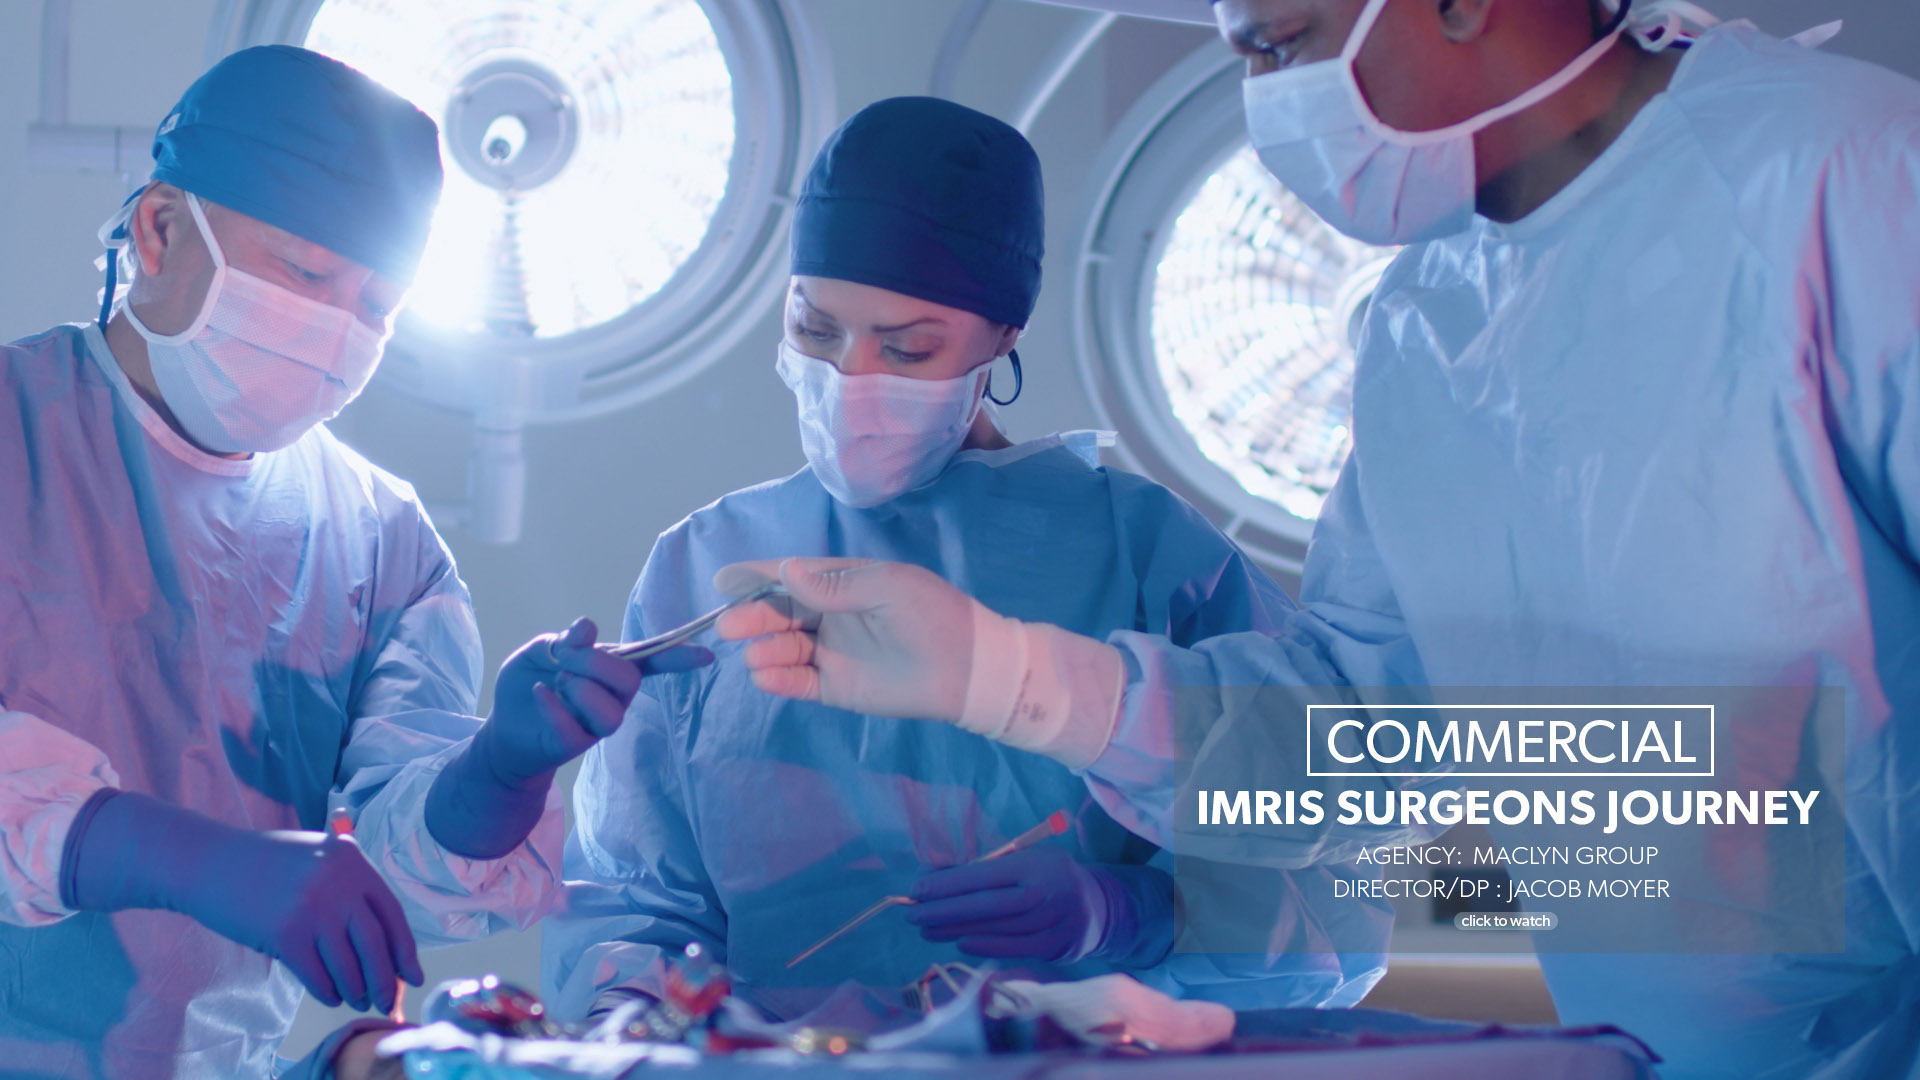 IMRIS Surgeons Journey